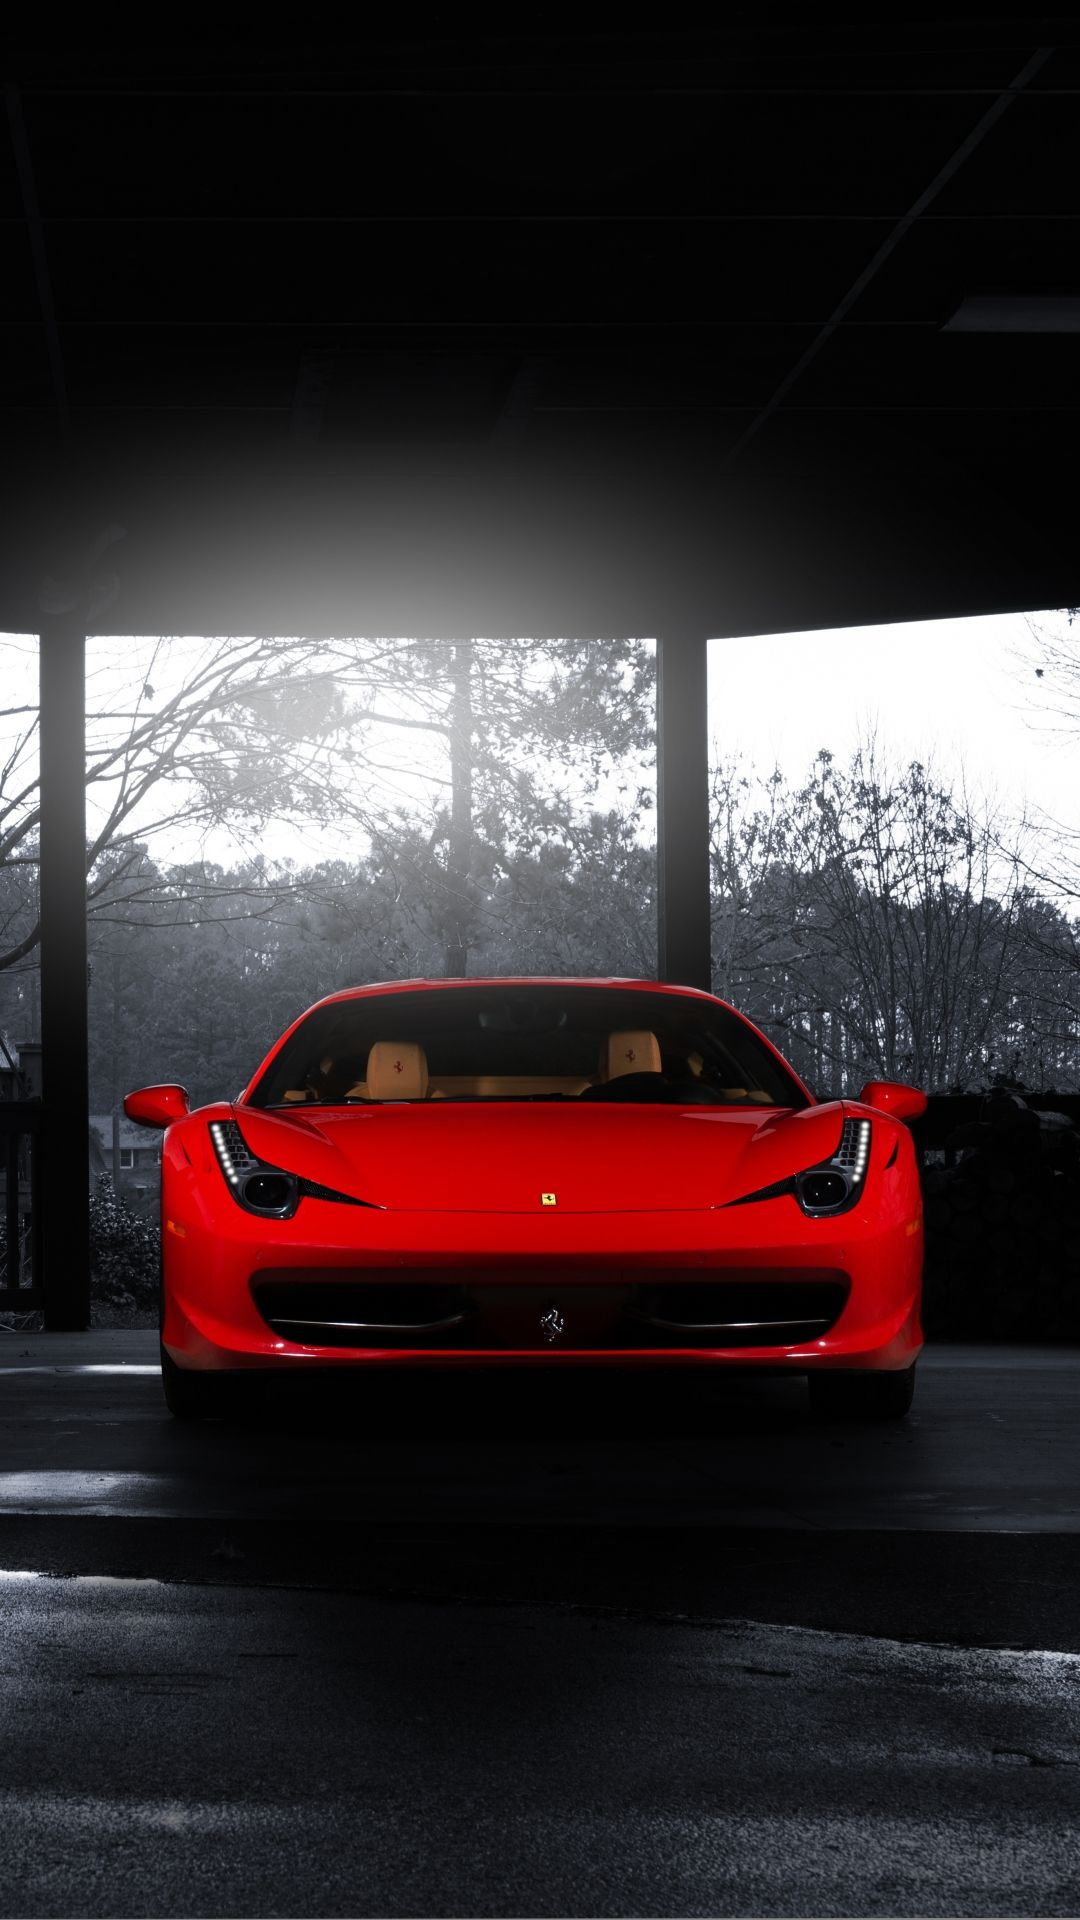 Ferrari Iphone Wallpapers Top Free Ferrari Iphone Backgrounds Wallpaperaccess